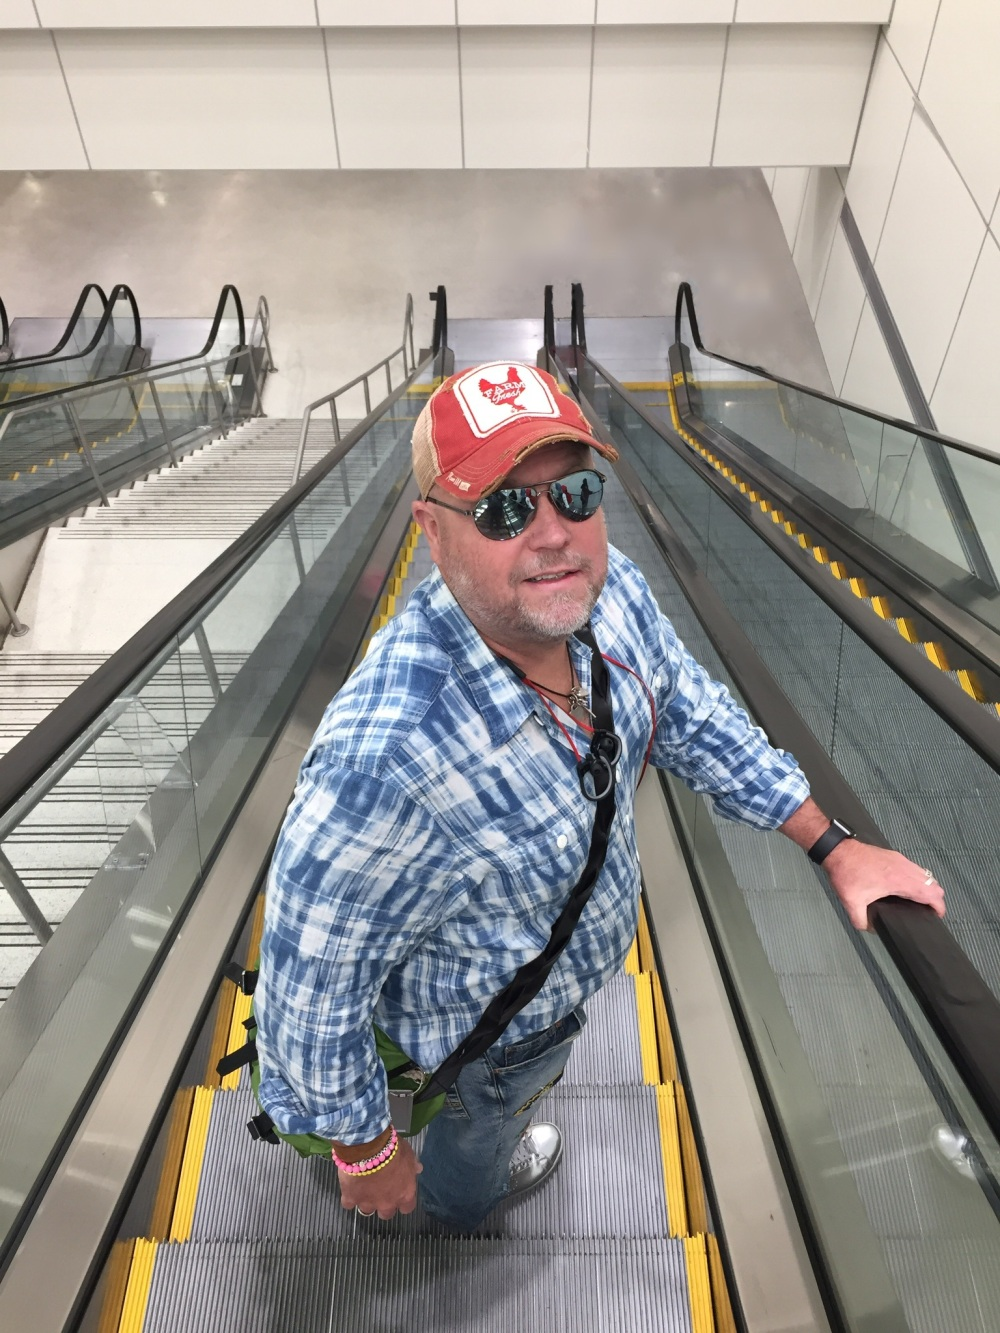 Jamie on Miami Escalator